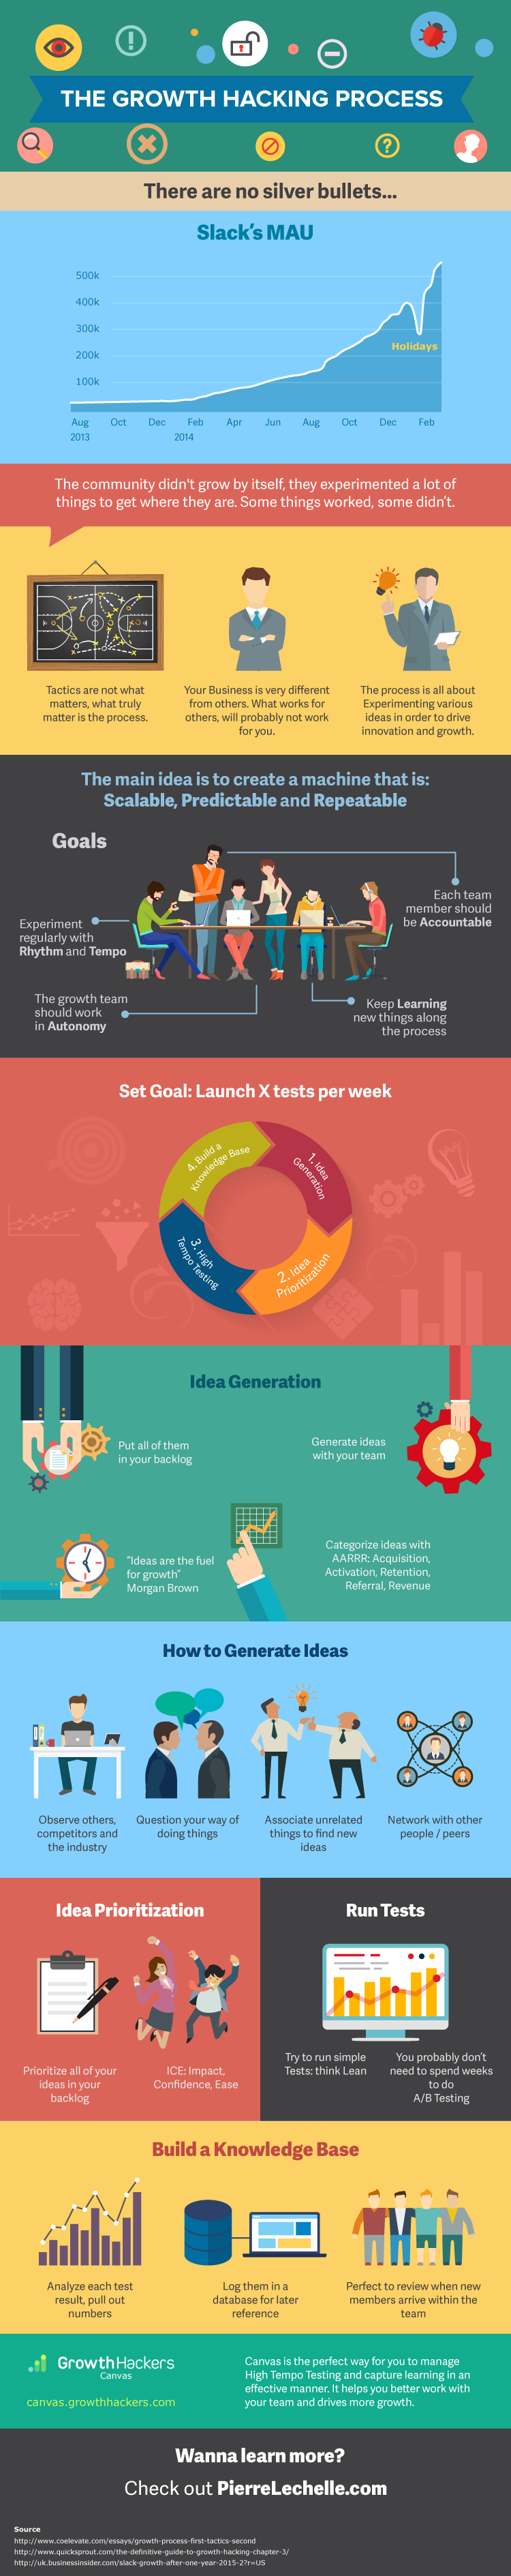 The Growth Hacking Process Infographic